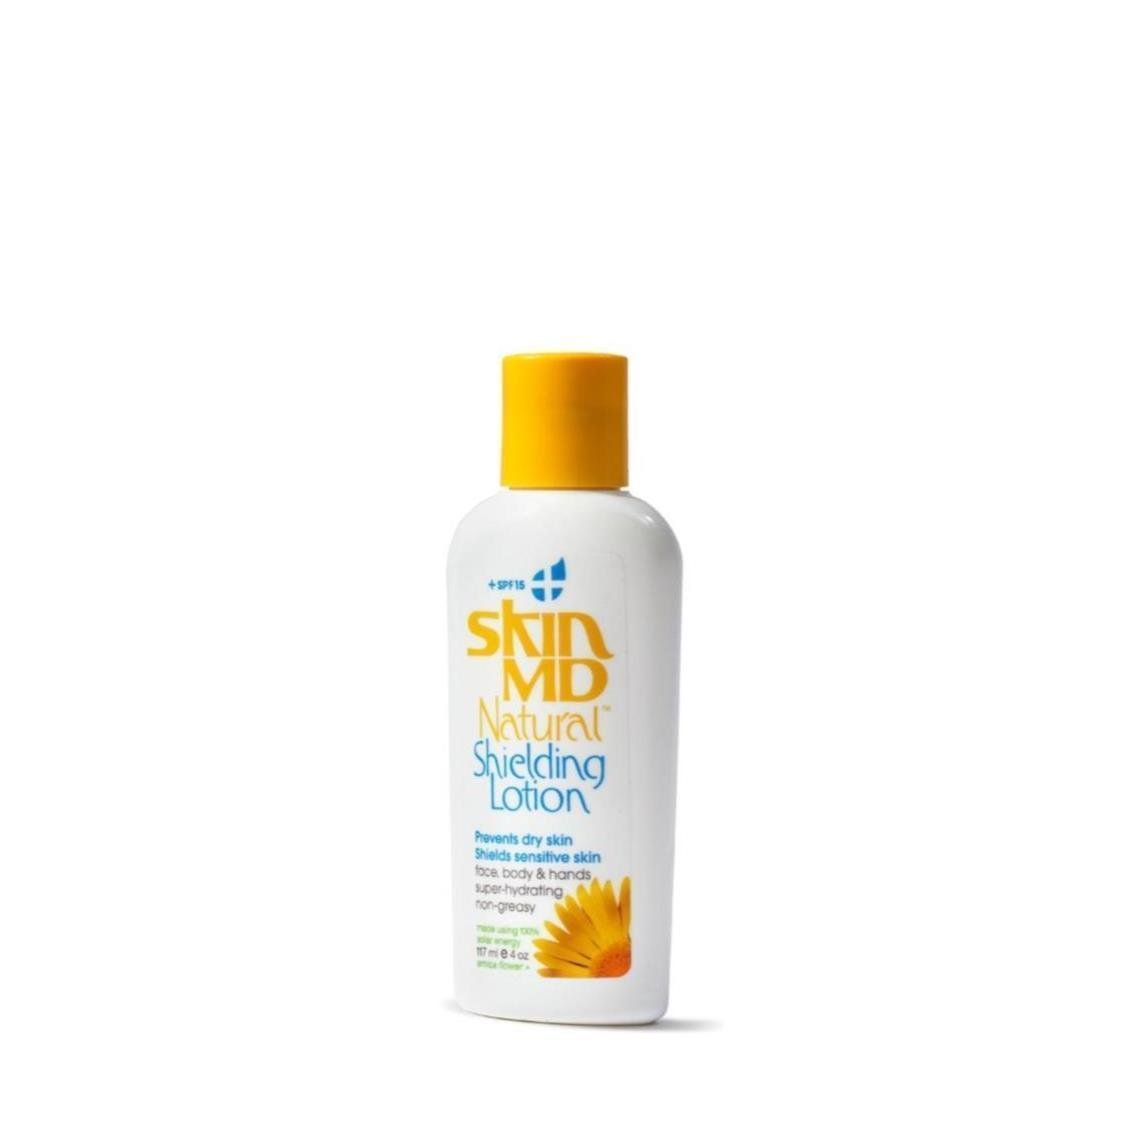 Natural Shielding Lotion  SPF 4oz